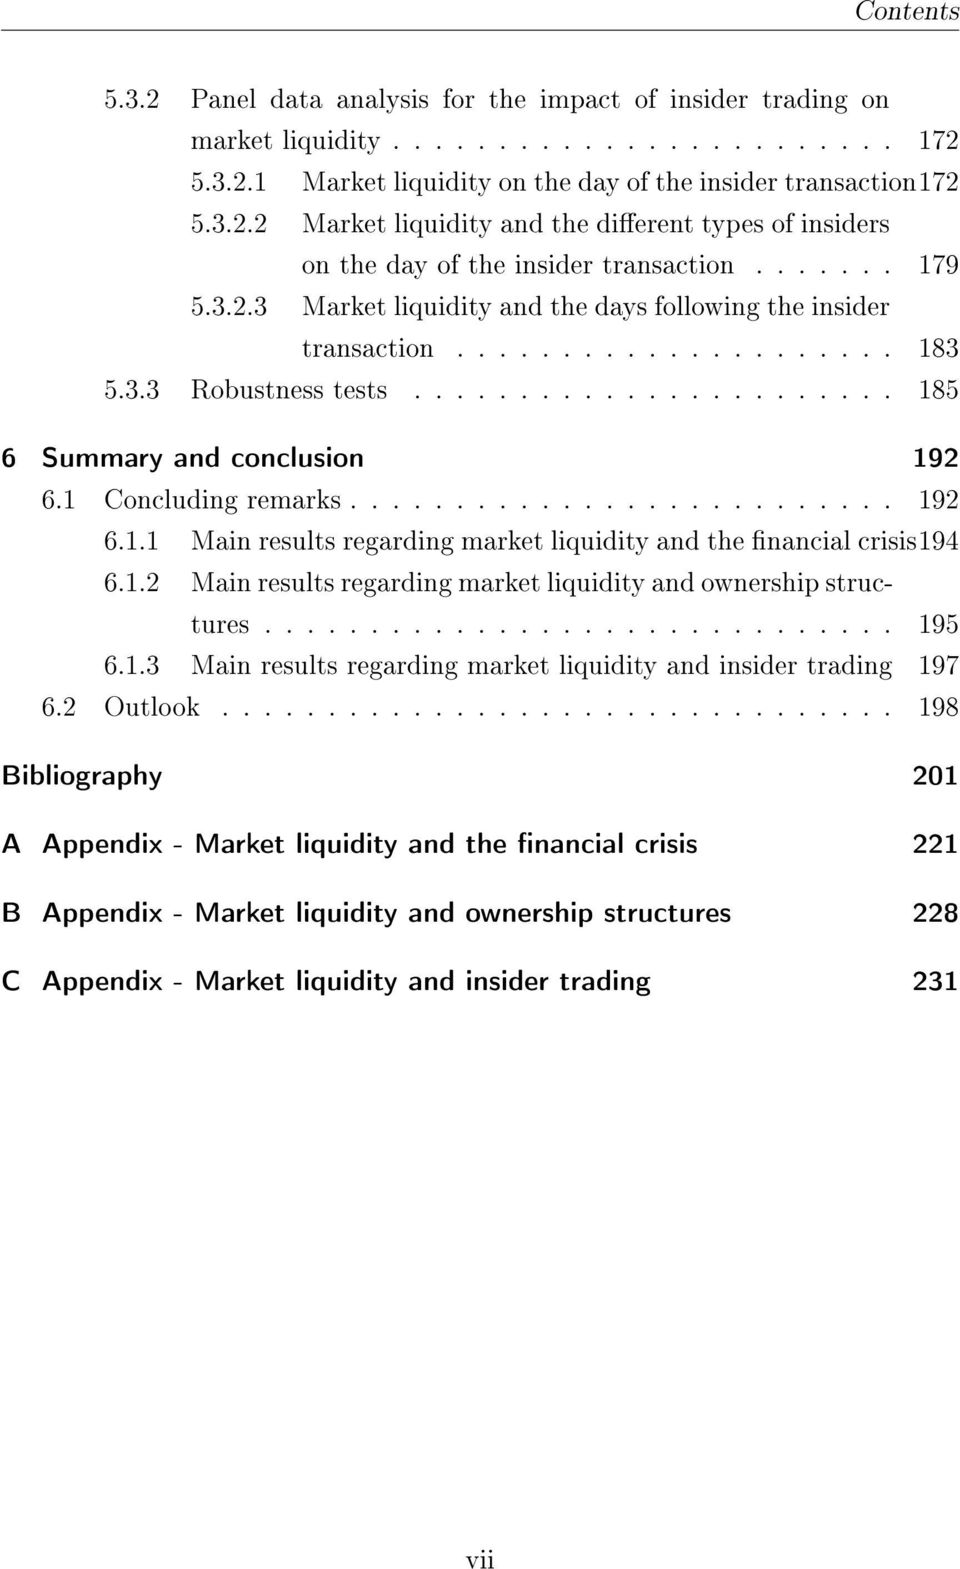 1 Concluding remarks.......................... 192 6.1.1 Main results regarding market liquidity and the nancial crisis194 6.1.2 Main results regarding market liquidity and ownership structures.